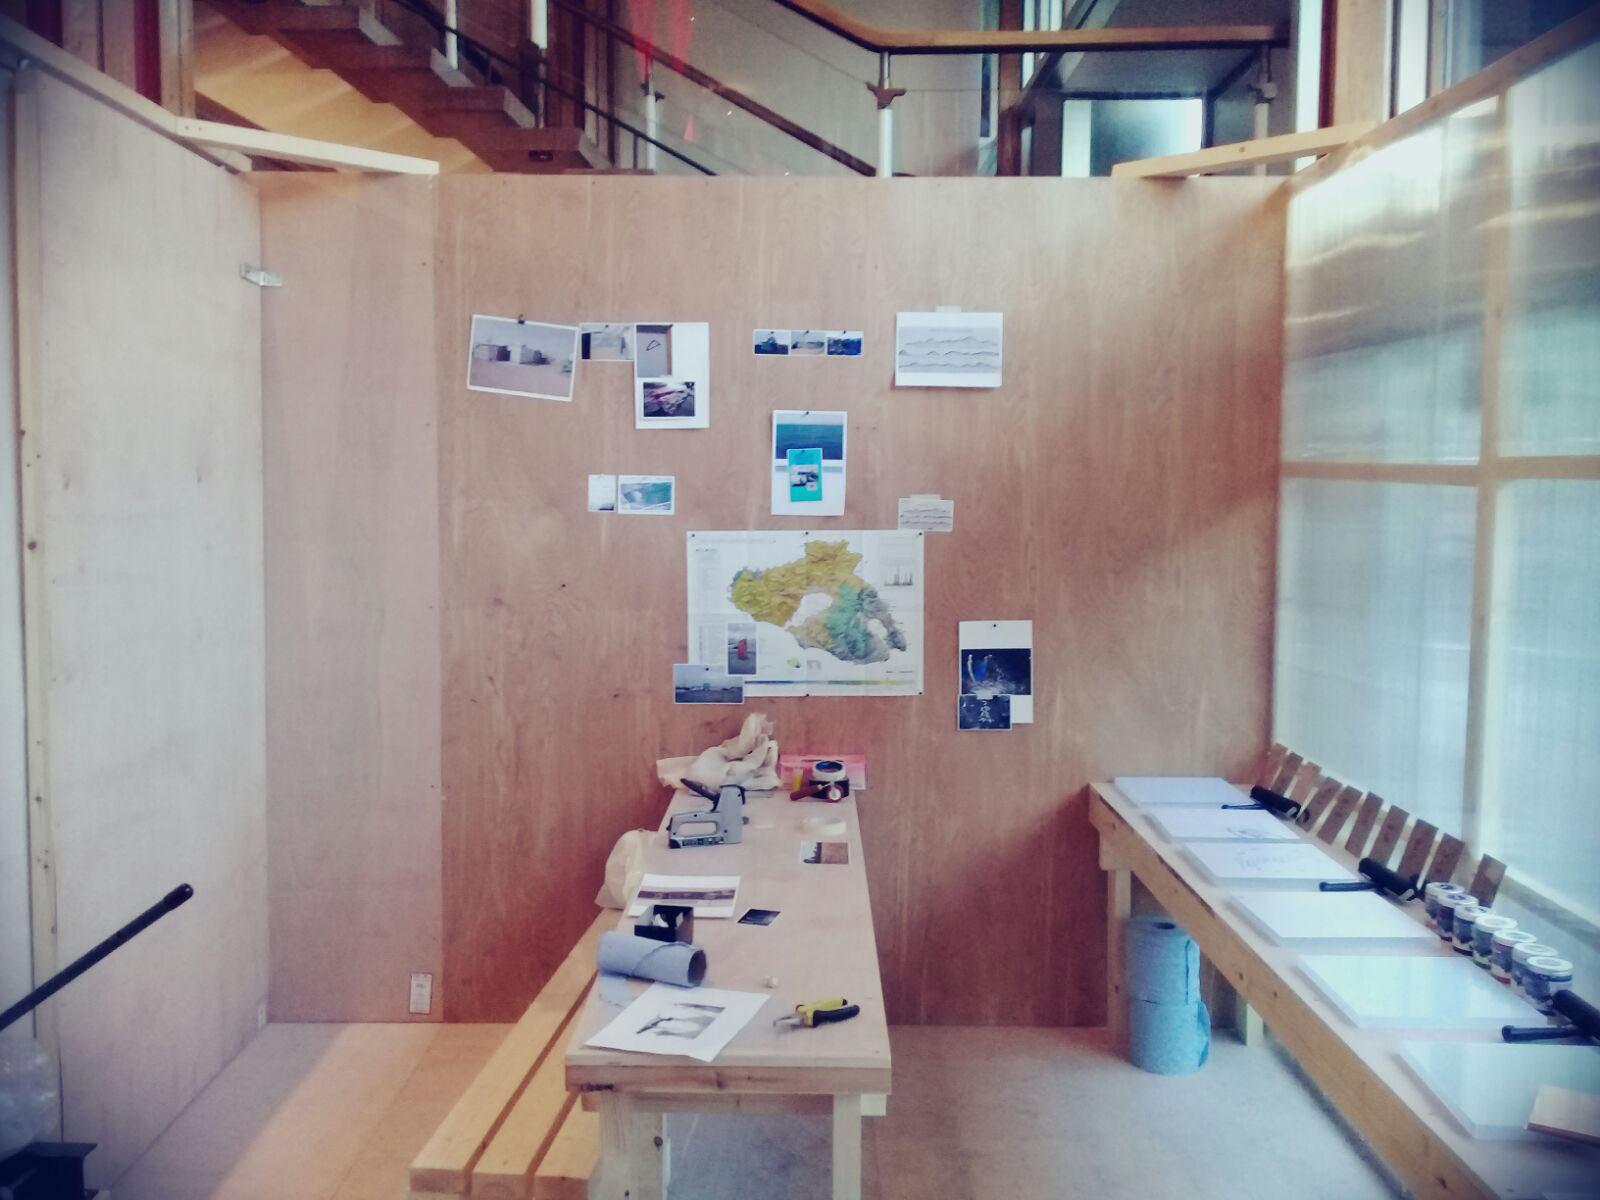 Design and build of a temporary print studio